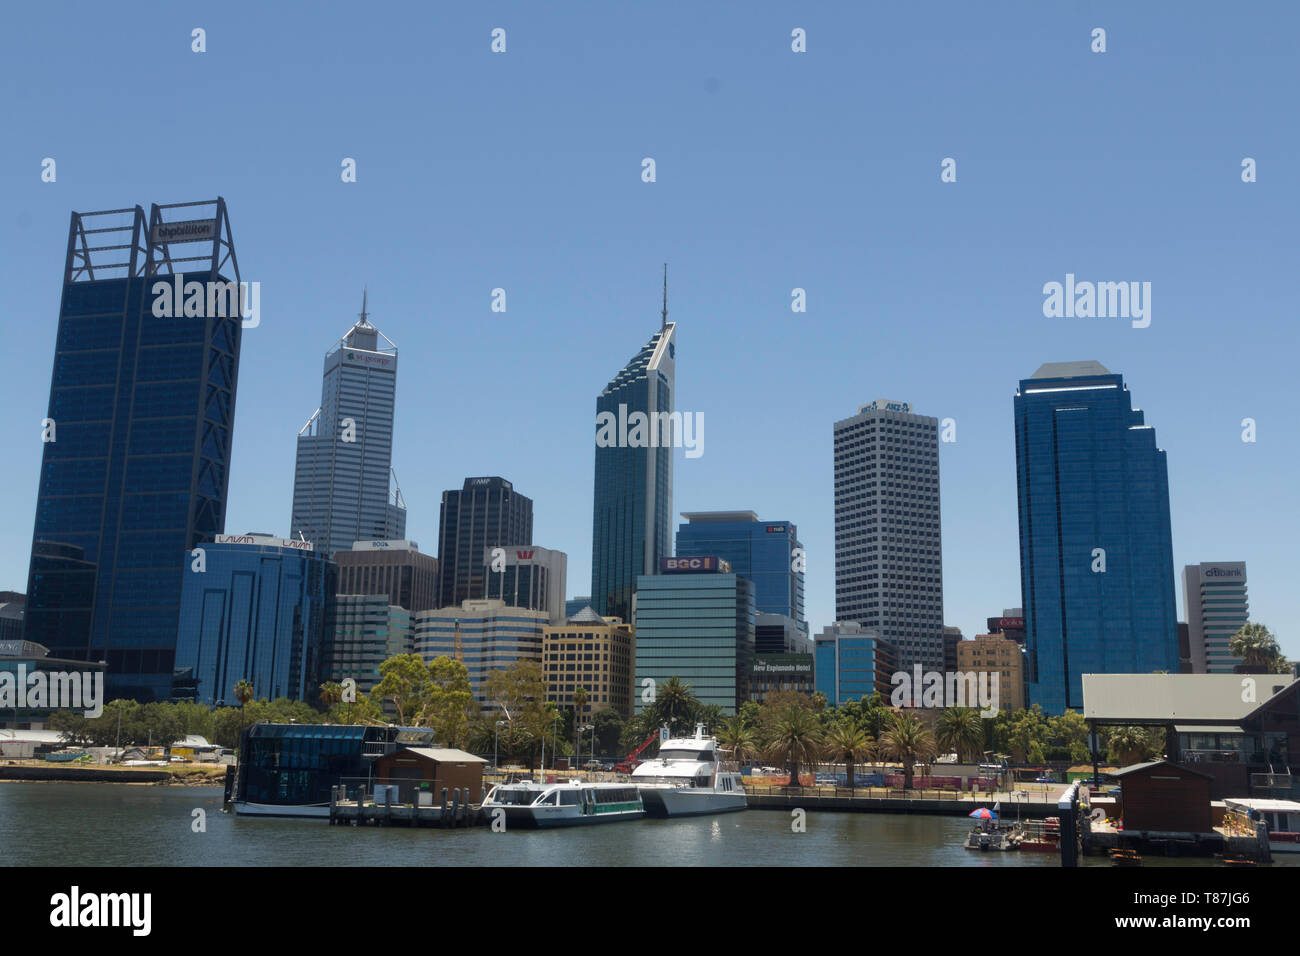 Perth, Western Australia, Australia - 21/01//2013 :Swan River,View of the financial area, offices and commercial buildings and skyscrapers of the cit - Stock Image